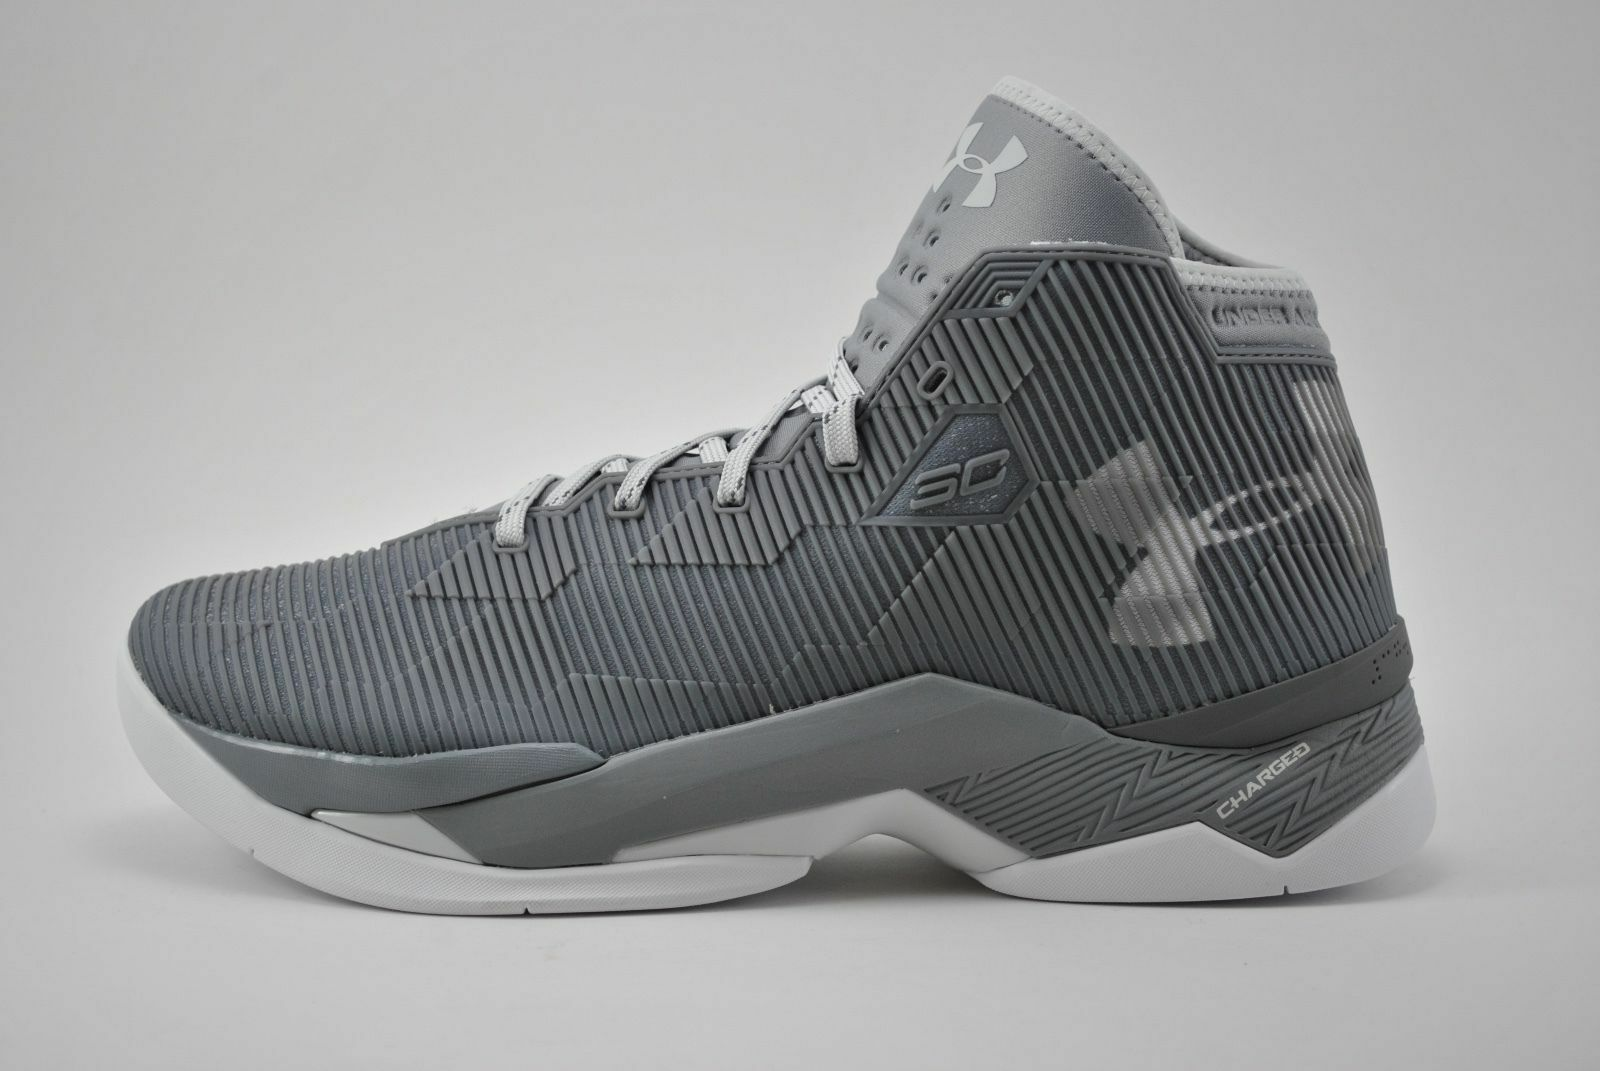 sports shoes 11ce3 af1aa Under Armour UA Curry 2.5 Basketball Shoes Size 8.5 - 15 Grey White  1274425-040